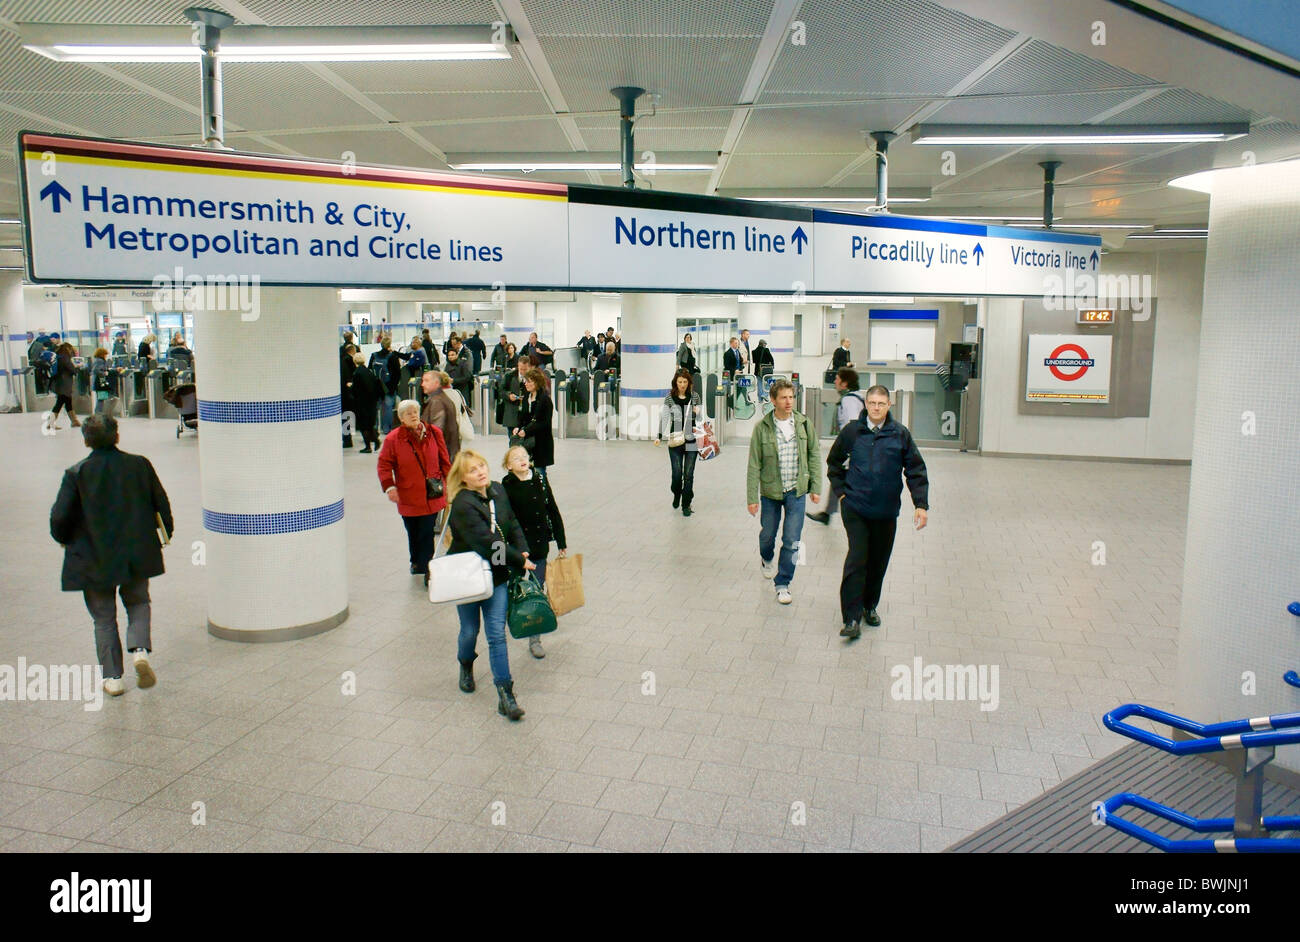 Kings Cross St. Pancras underground tube station on Euston Road, London. New entrance exit foyer, travellers and - Stock Image